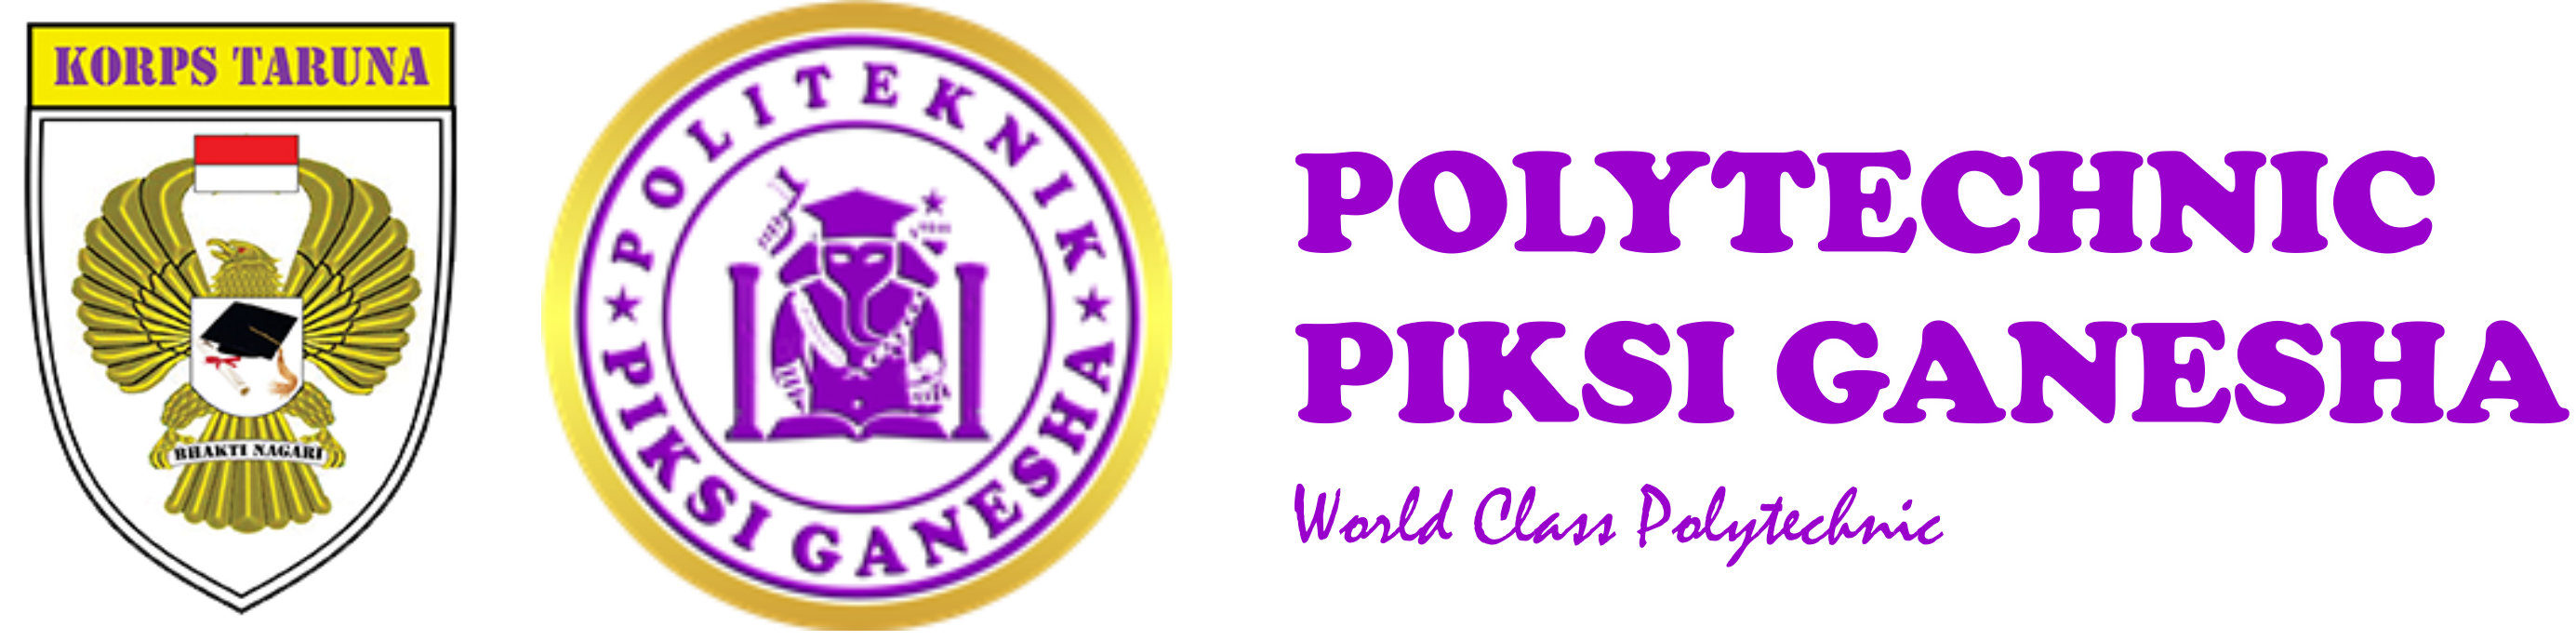 INTERNATIONAL OFFICE POLYTECHNIC PIKSI GANESHA